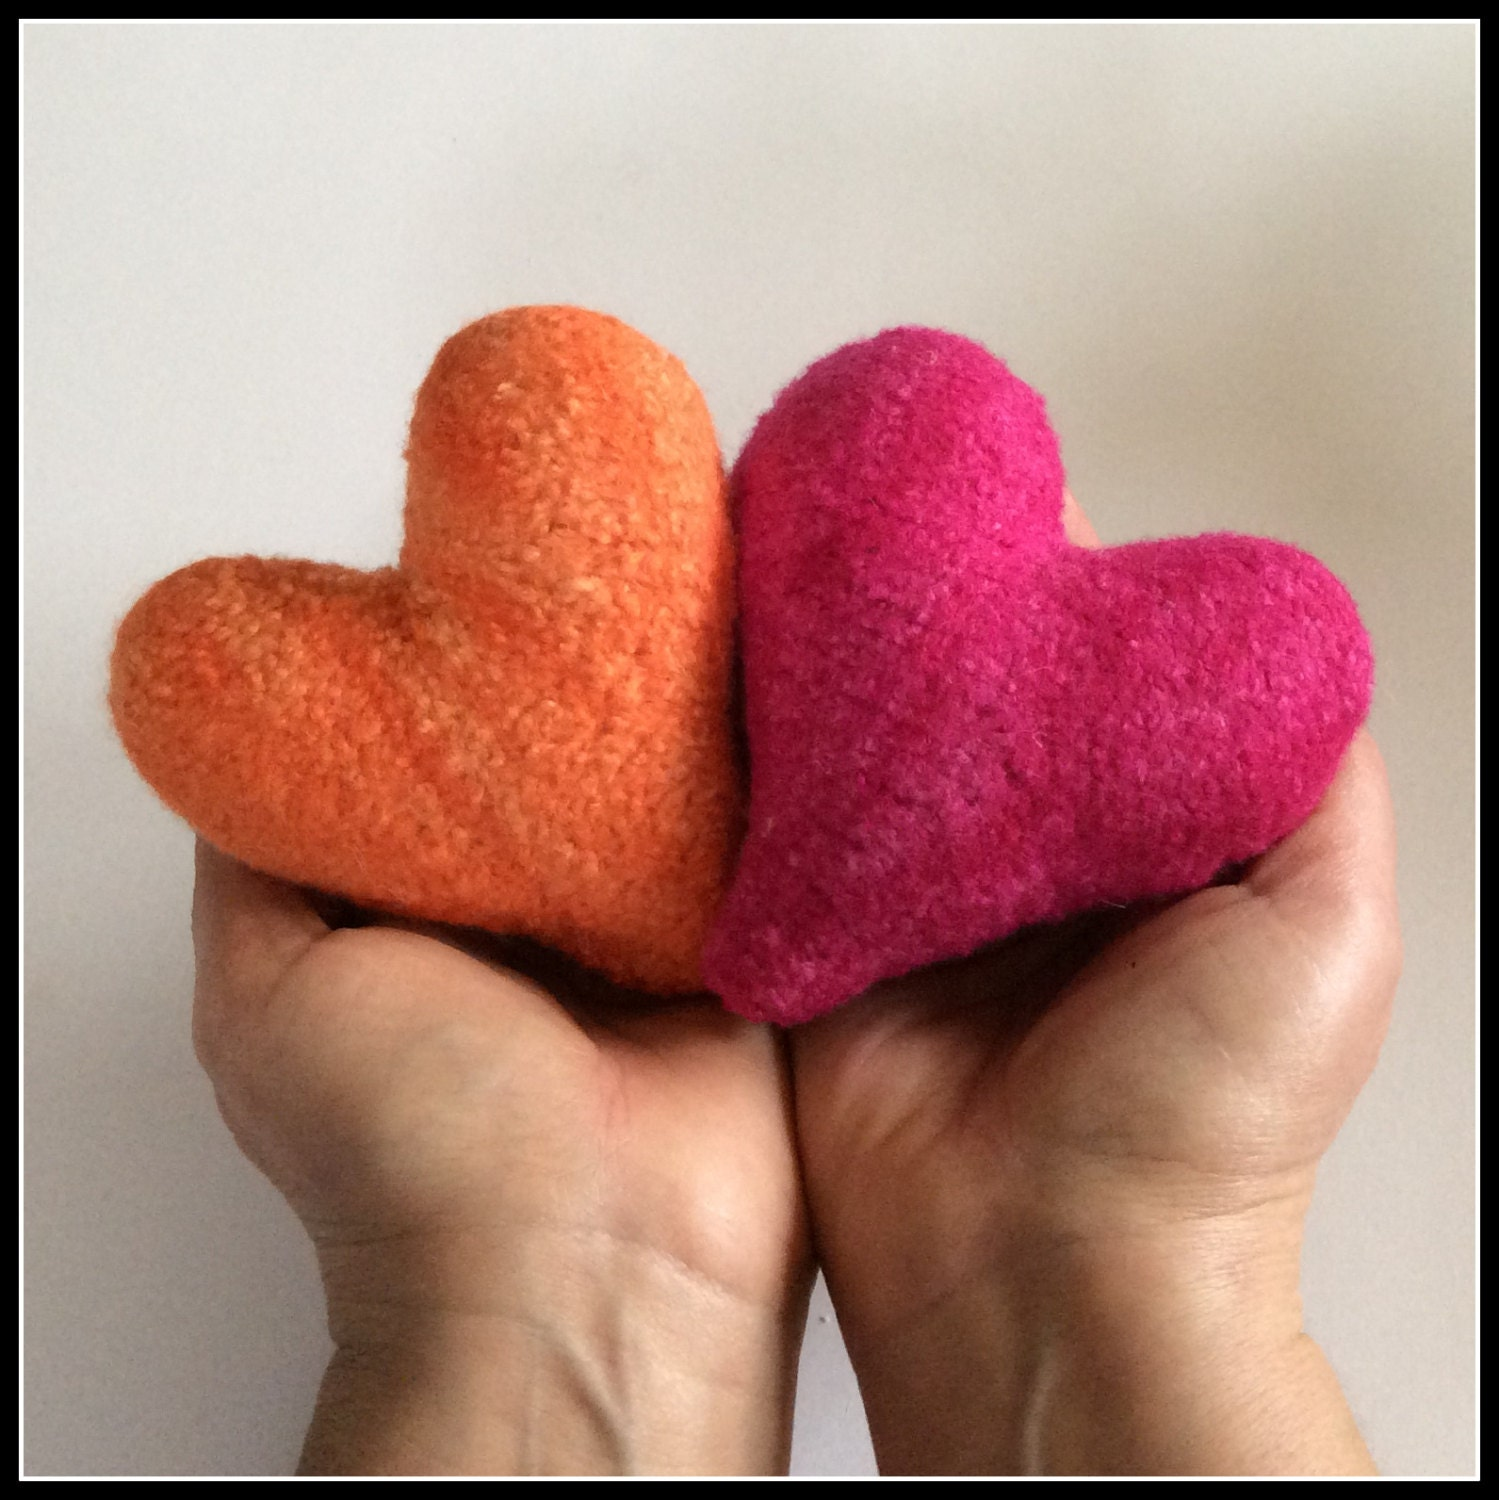 Felted Hearts Knitting Pattern from AbsoluteKnits on Etsy Studio